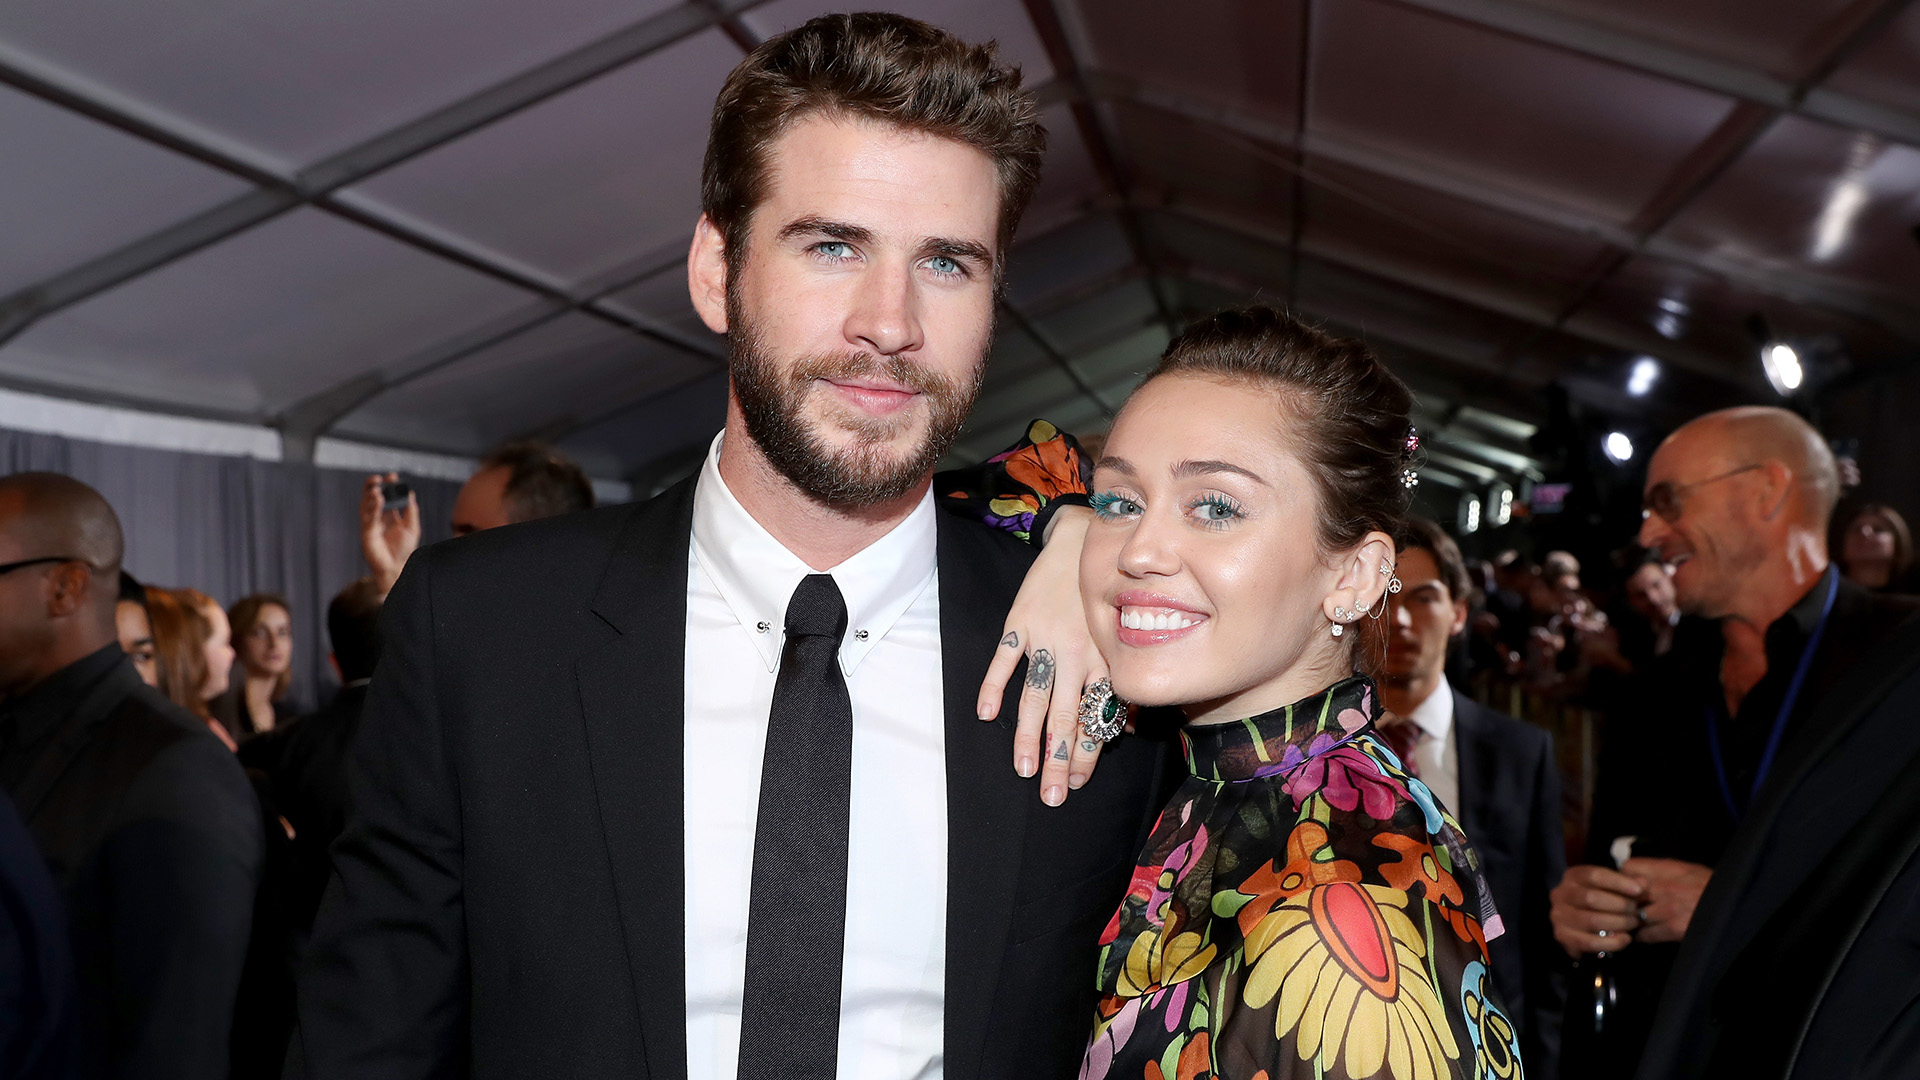 Miley Cyrus and Liam Hemsworth Debuted Matching Food-Related Tattoos